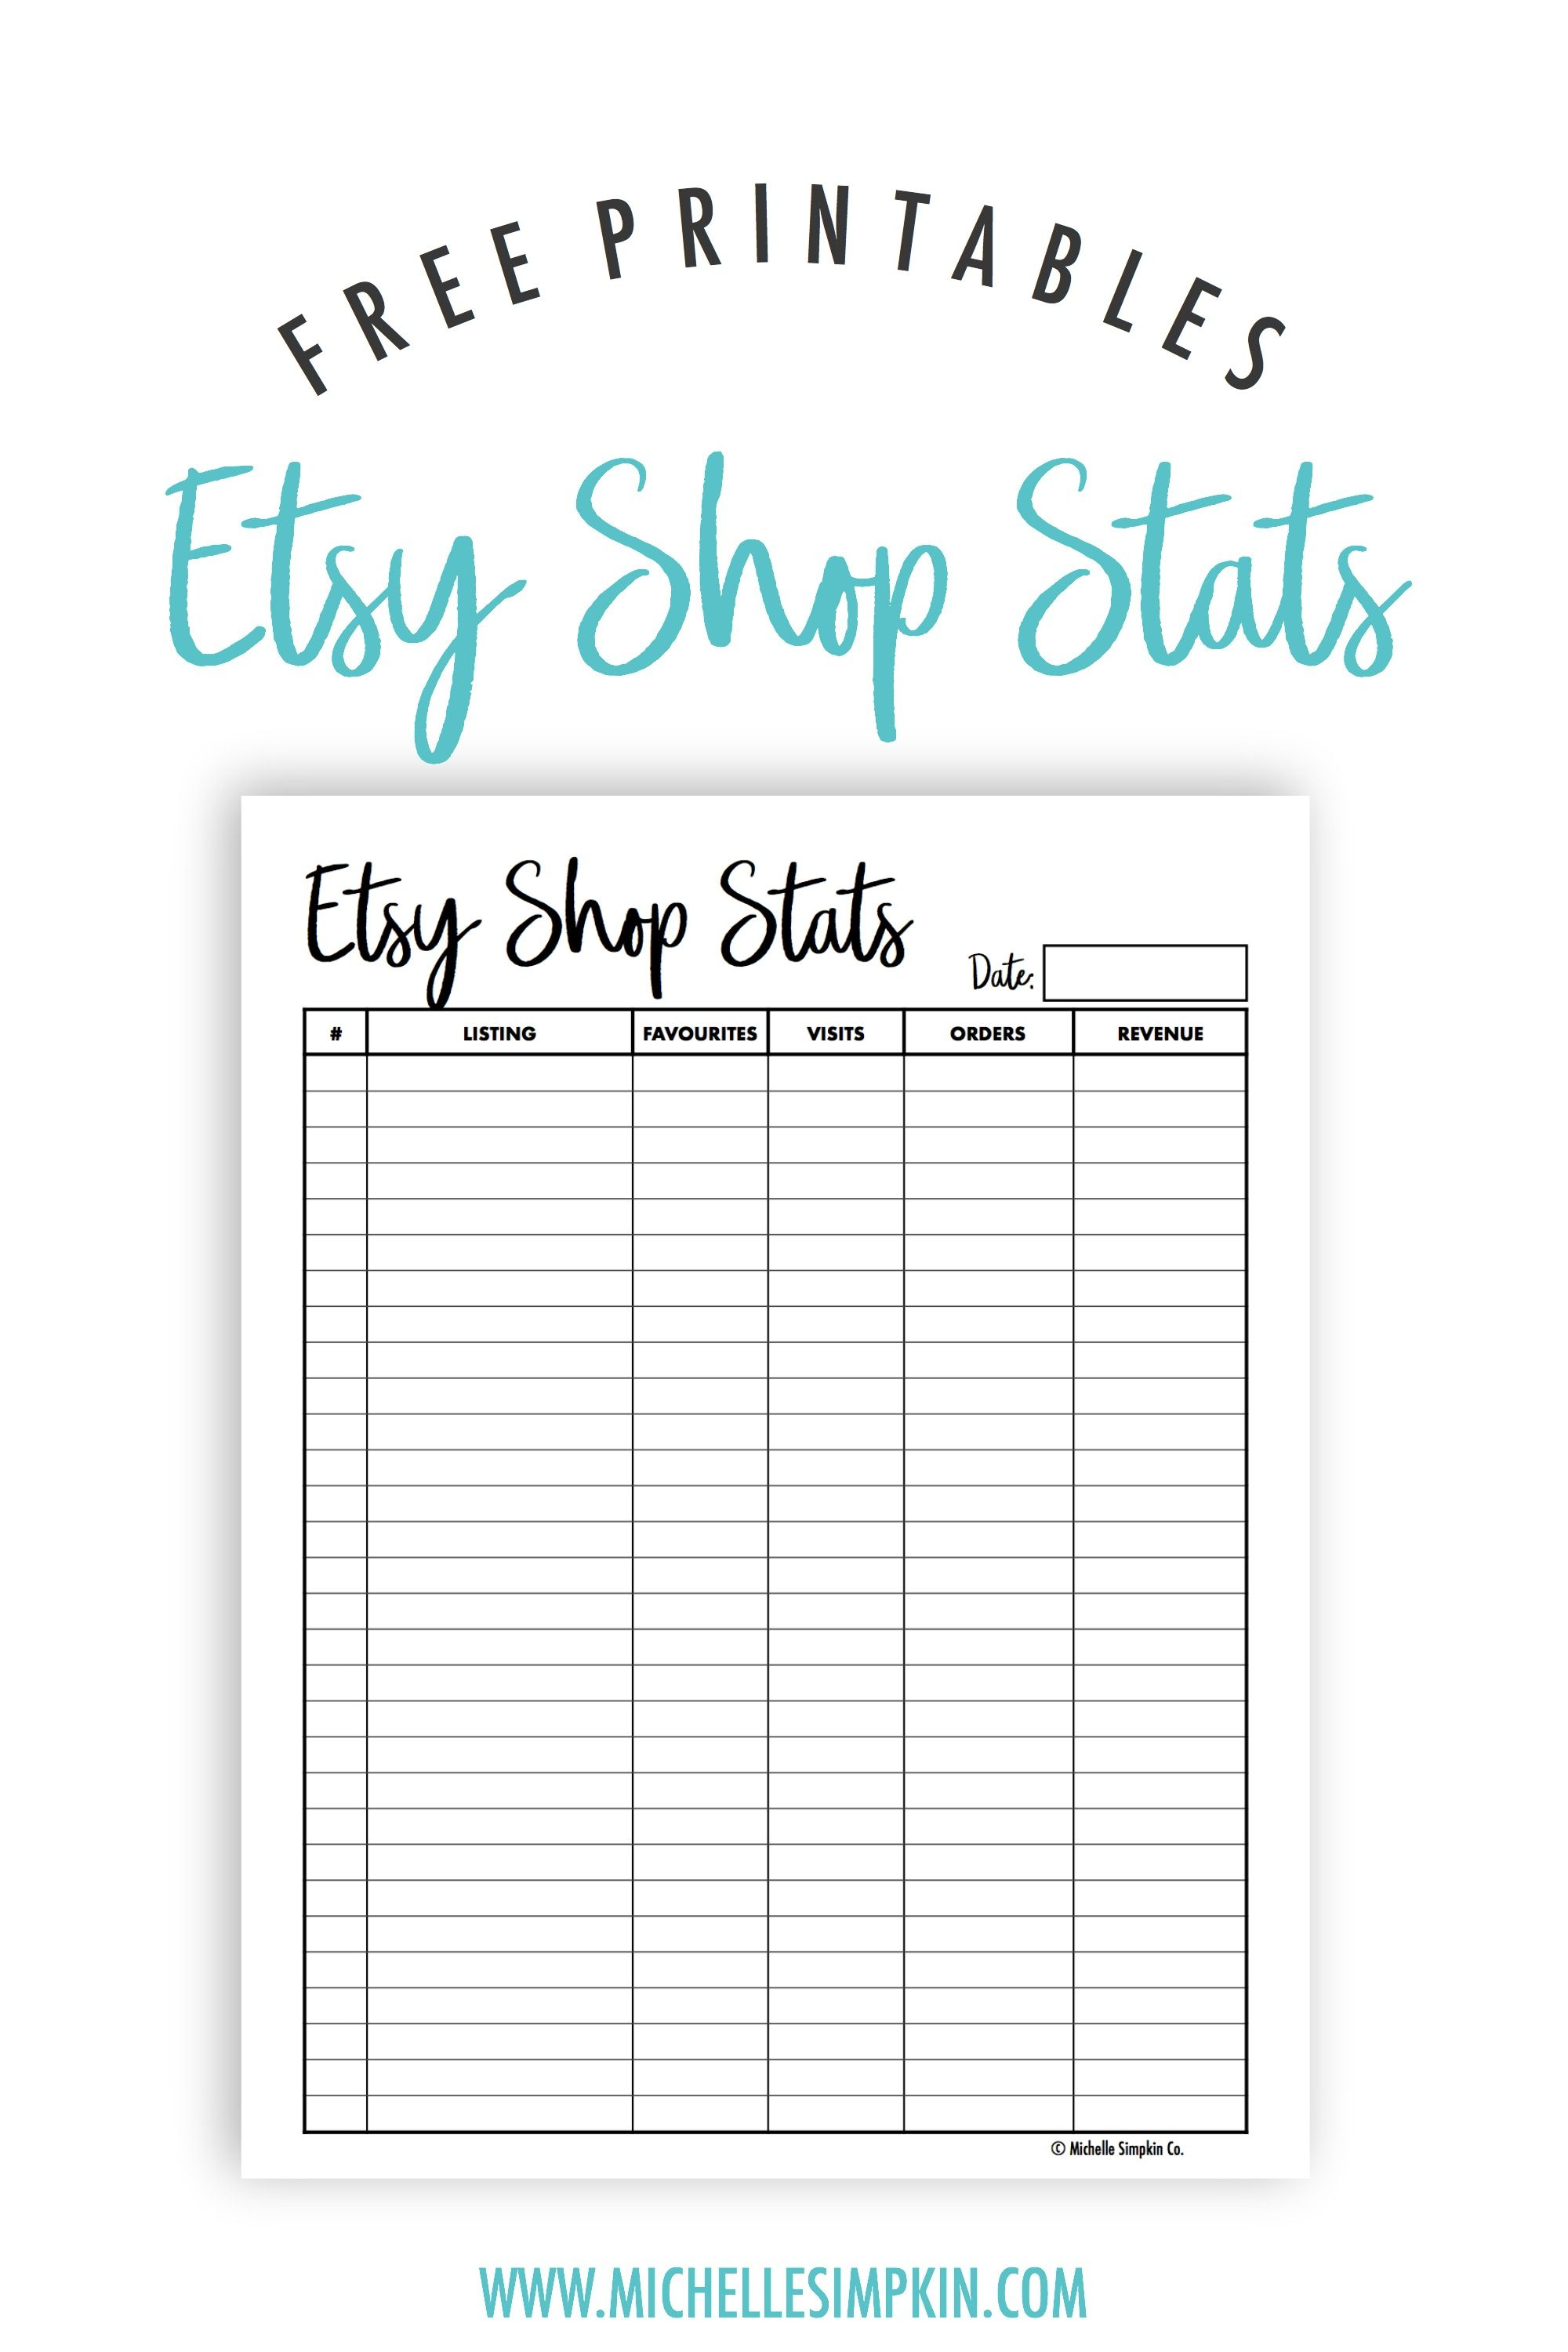 photo about Etsy Printables identified as Free of charge Printables! This Etsy Retailer Studies printable will assist